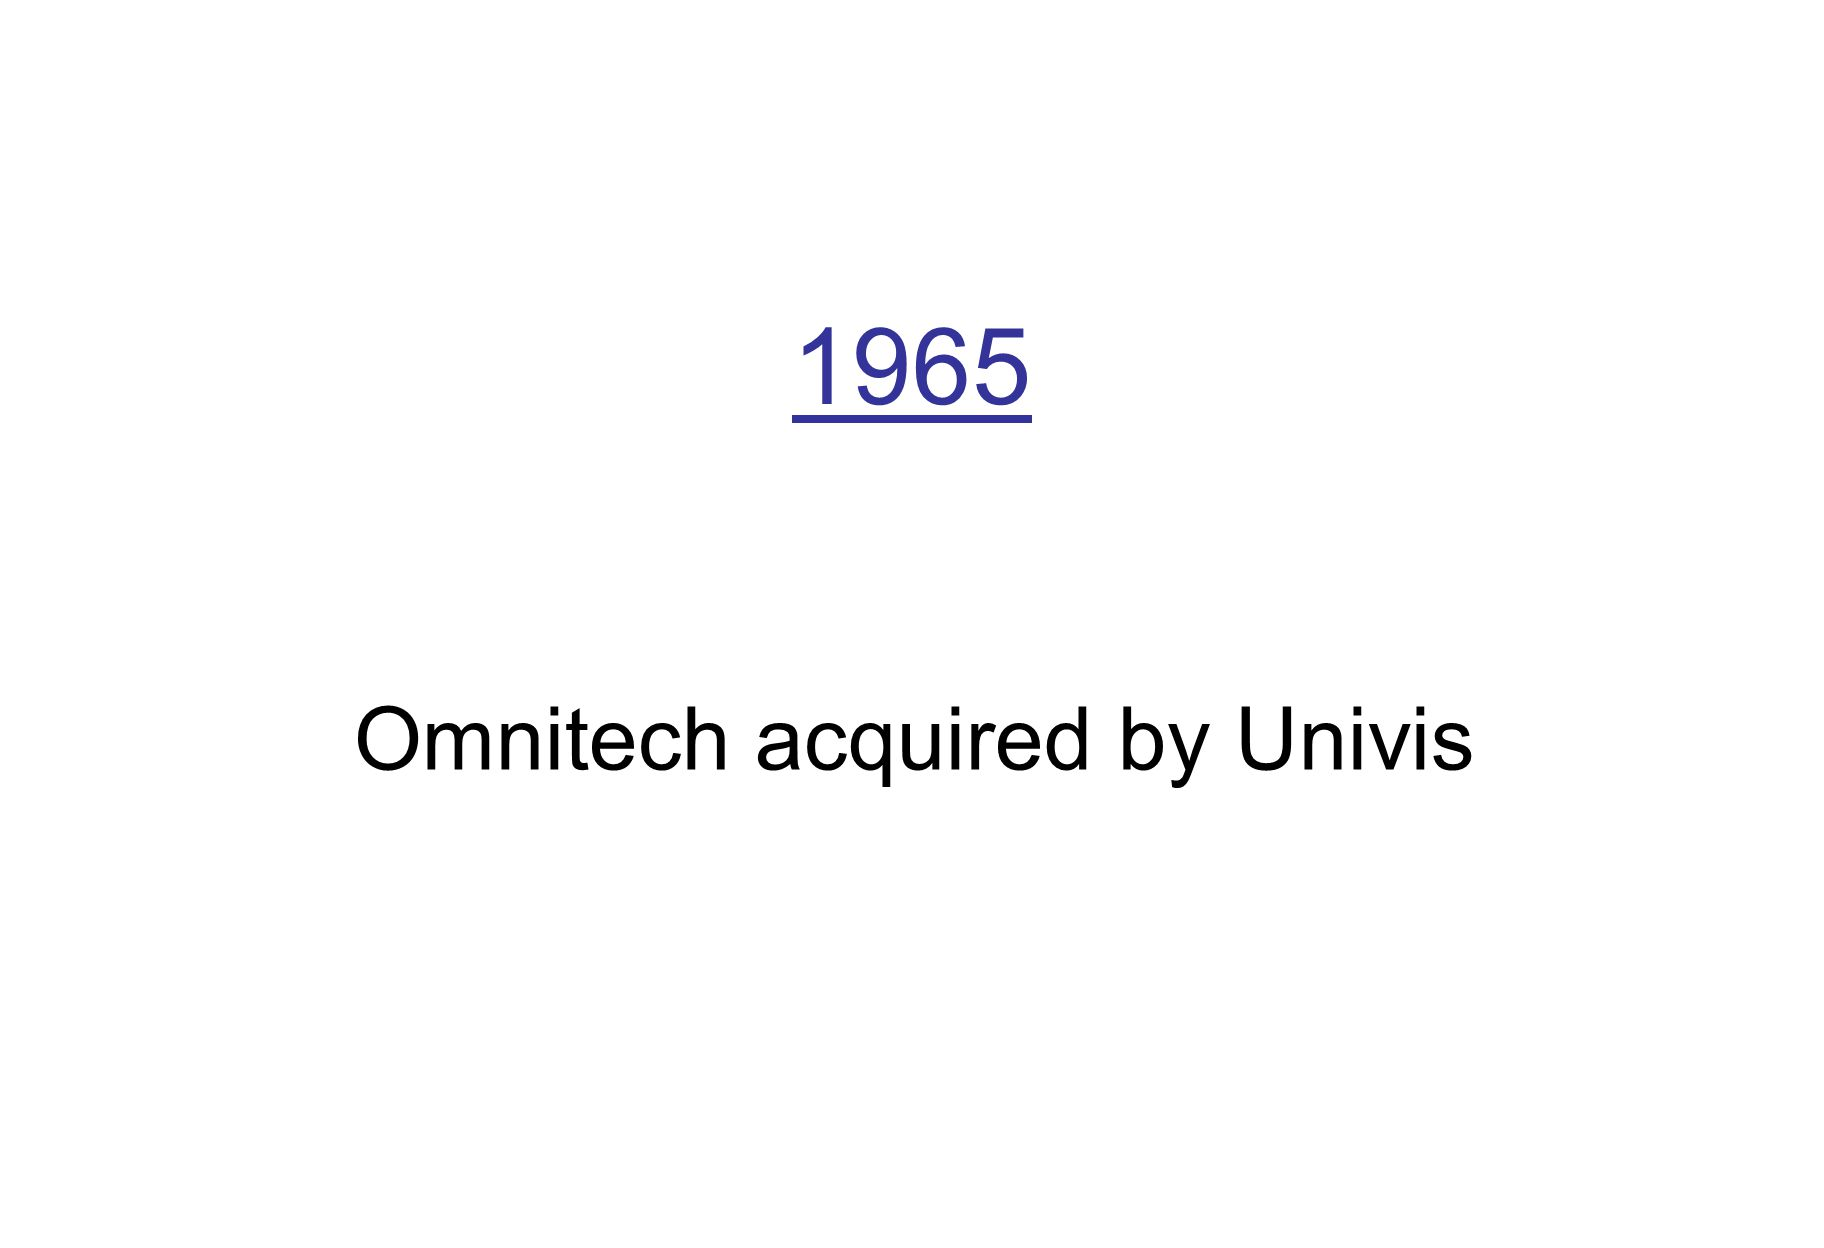 1965 Omnitech acquired by Univis